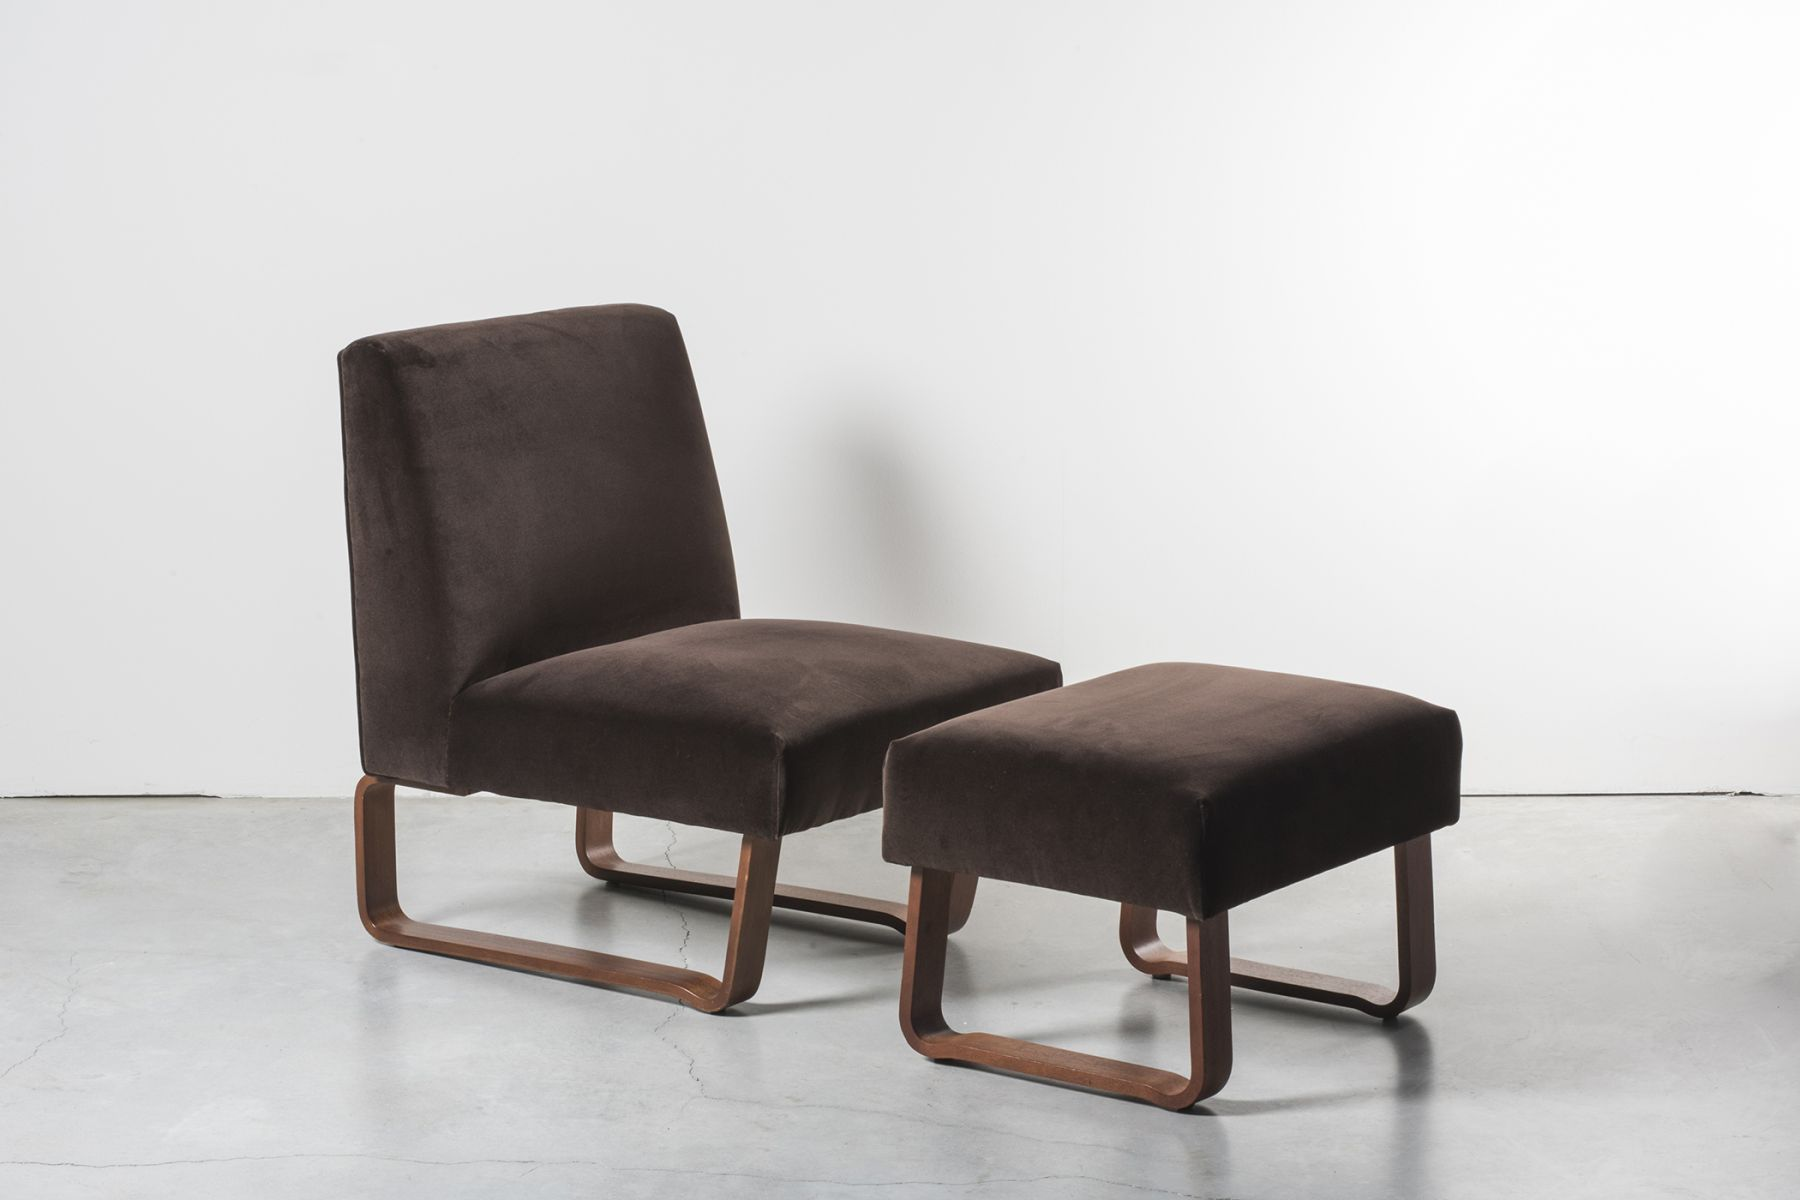 Lounge chair and ottoman Edward Wormley  pic-1